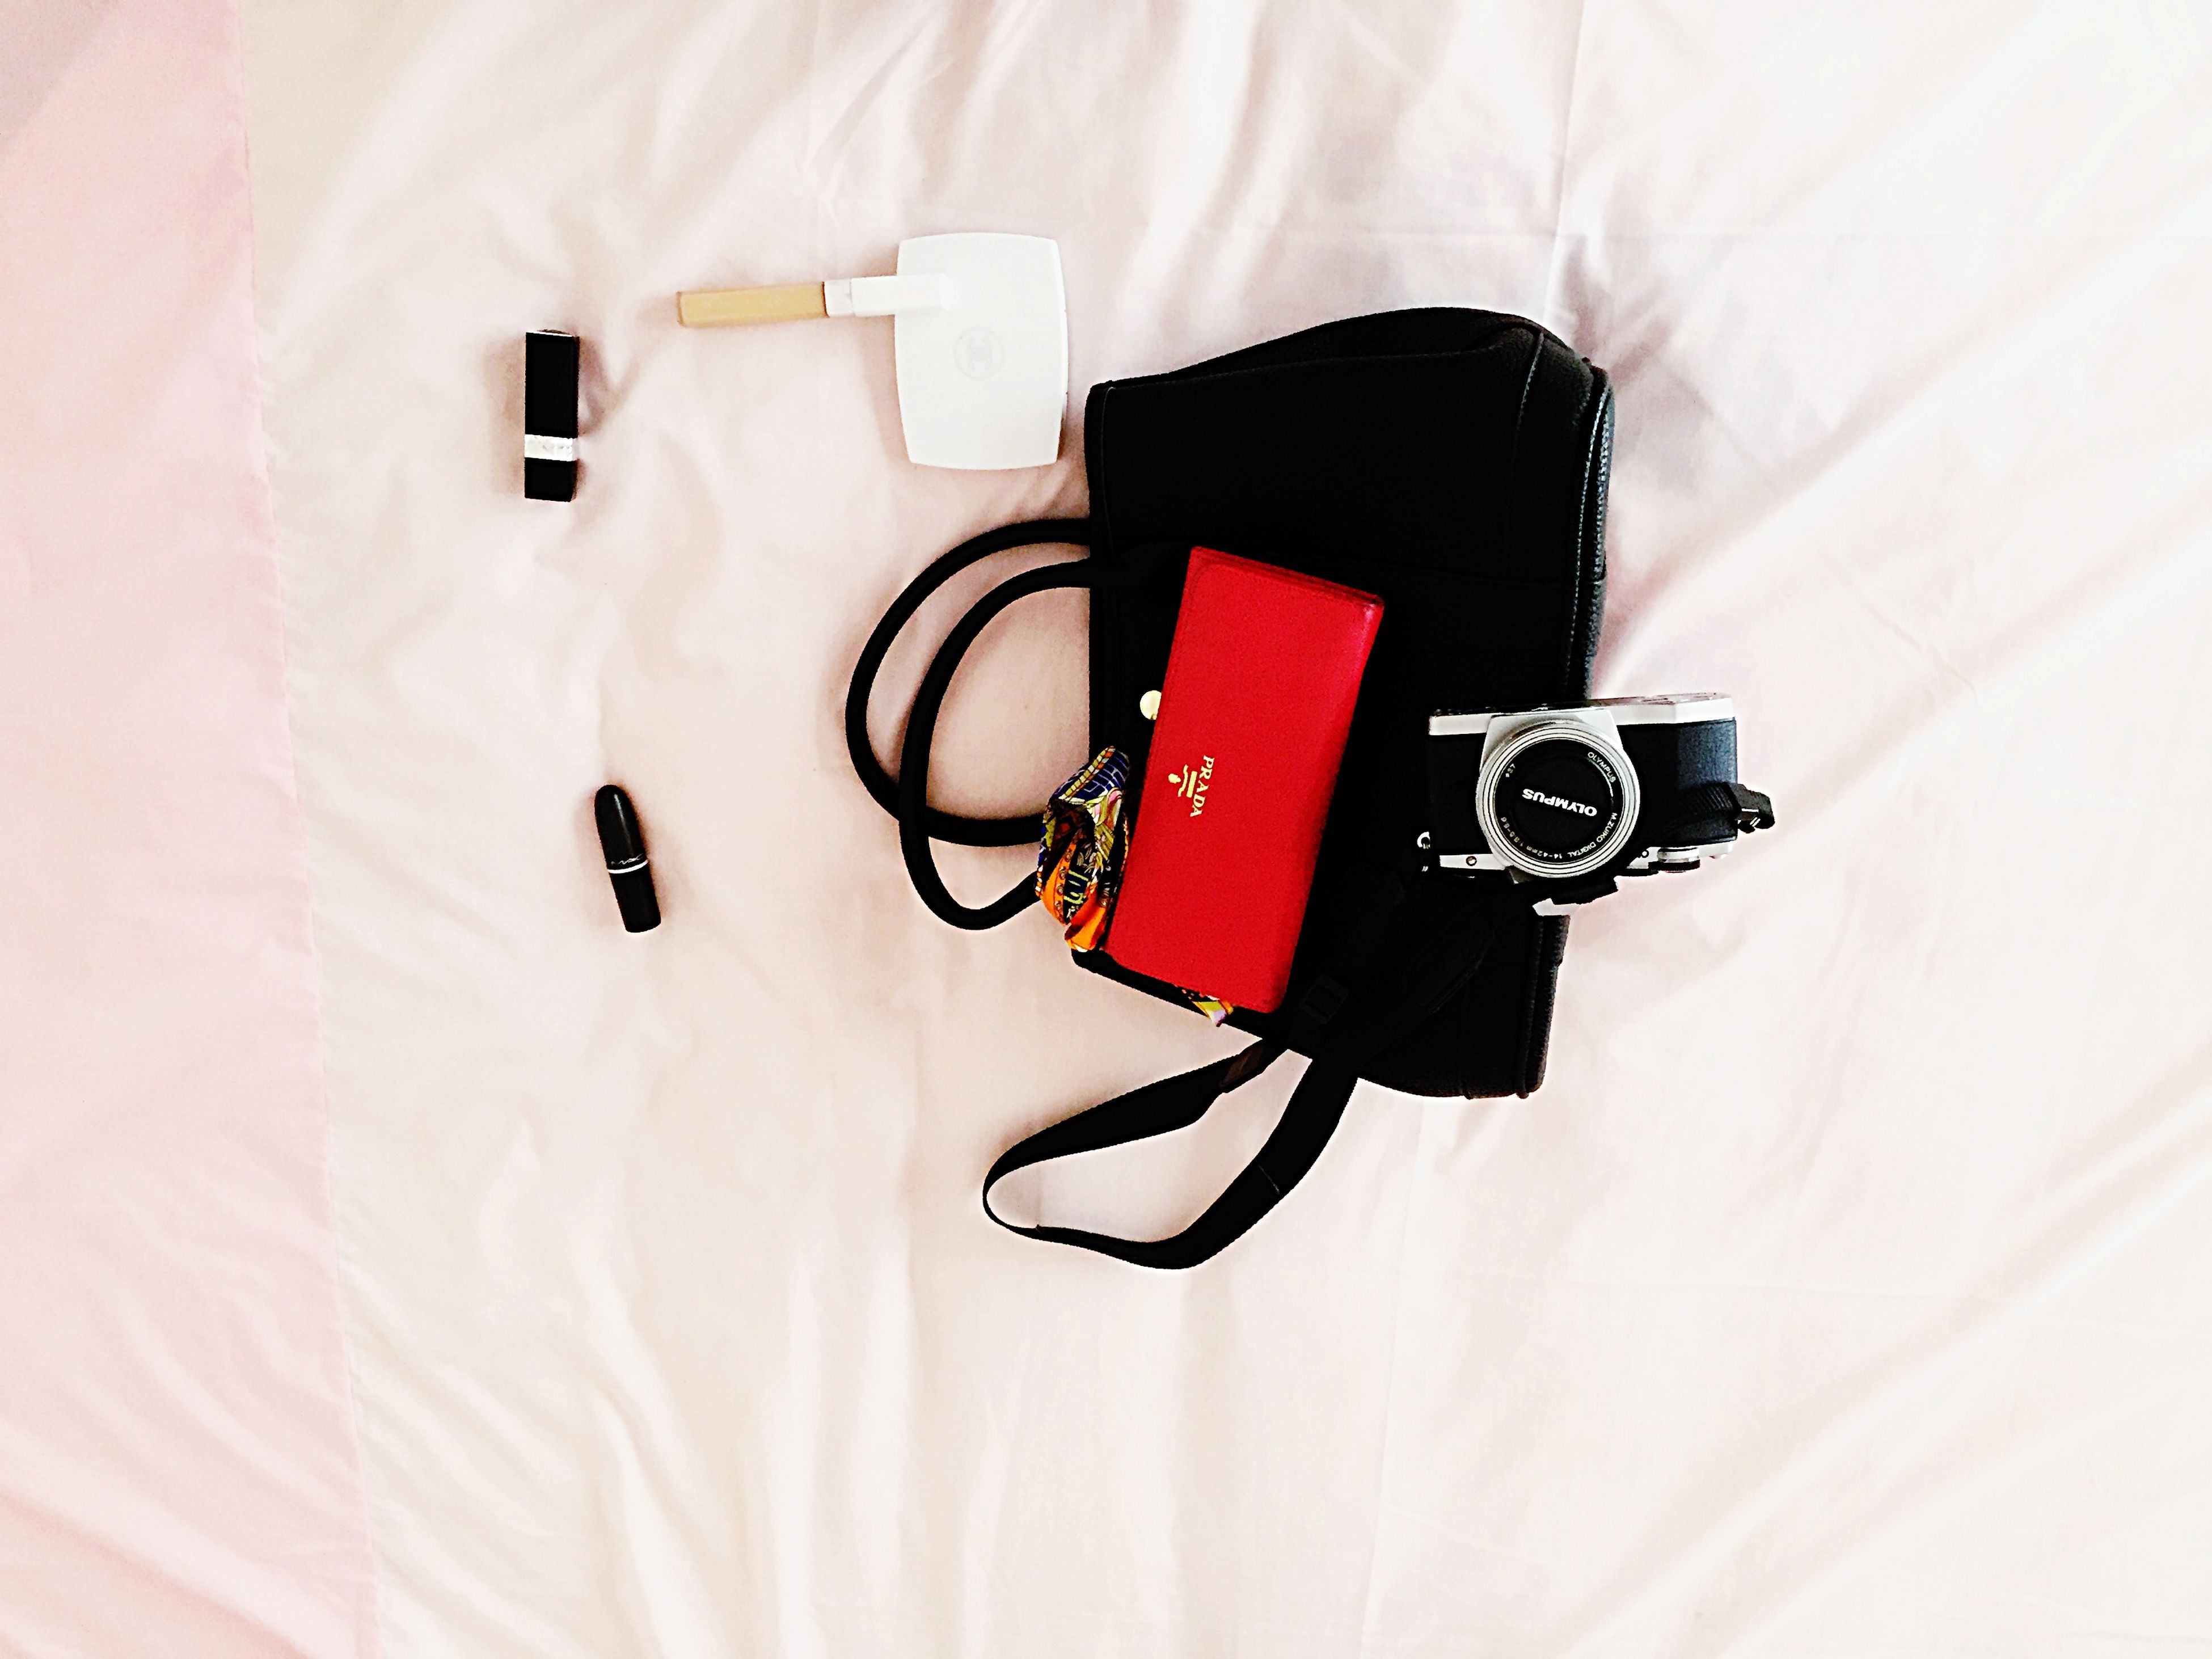 indoors, still life, technology, close-up, high angle view, white background, connection, single object, toy, white color, studio shot, man made object, hanging, red, no people, equipment, wall - building feature, clothing, fashion, table